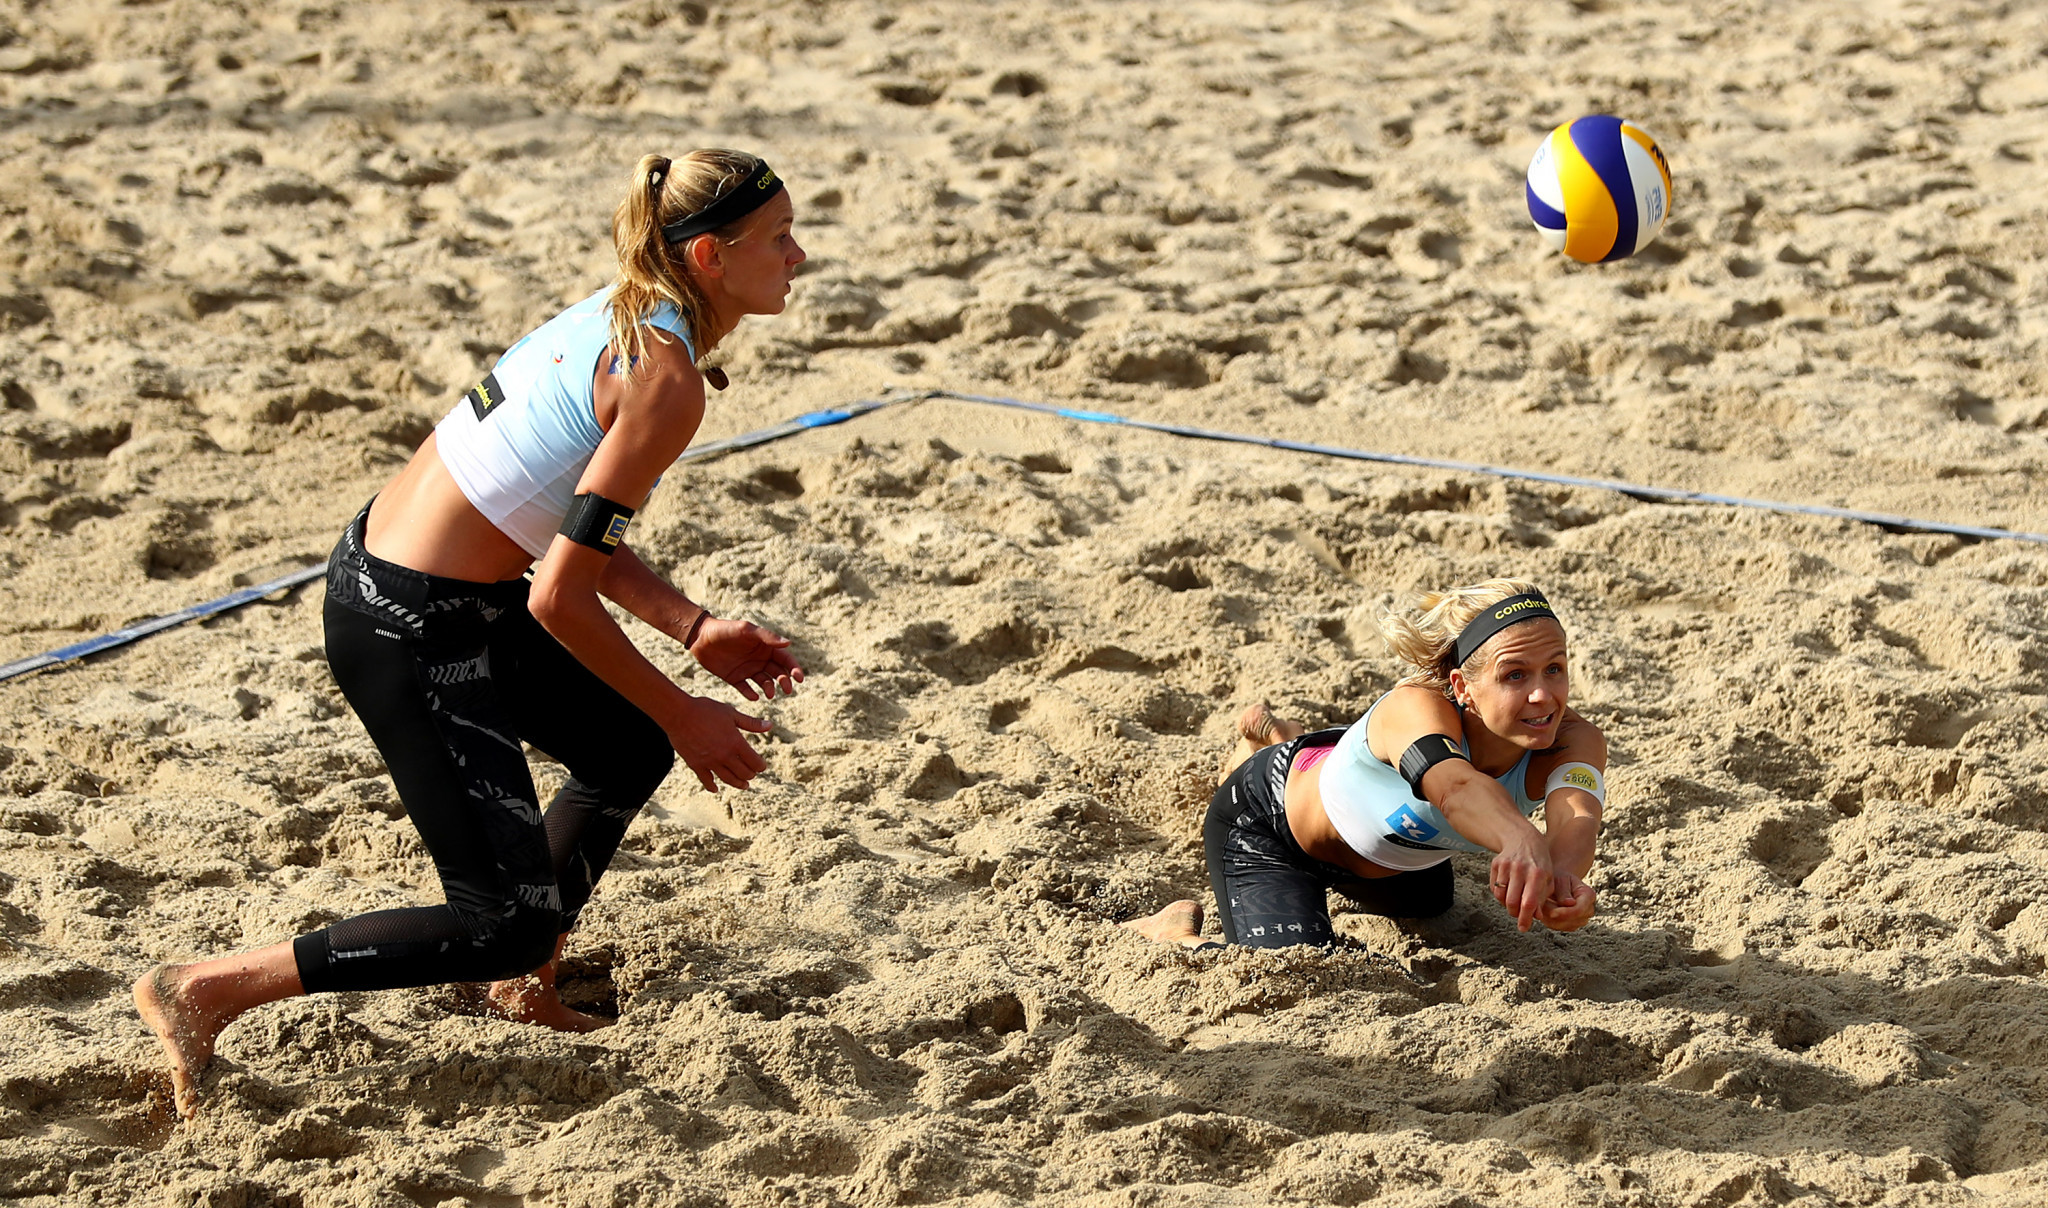 Olympic champions Laura Ludwig and Margareta Kozuch won at the European Beach Volleyball Championships for a second time ©Getty Images